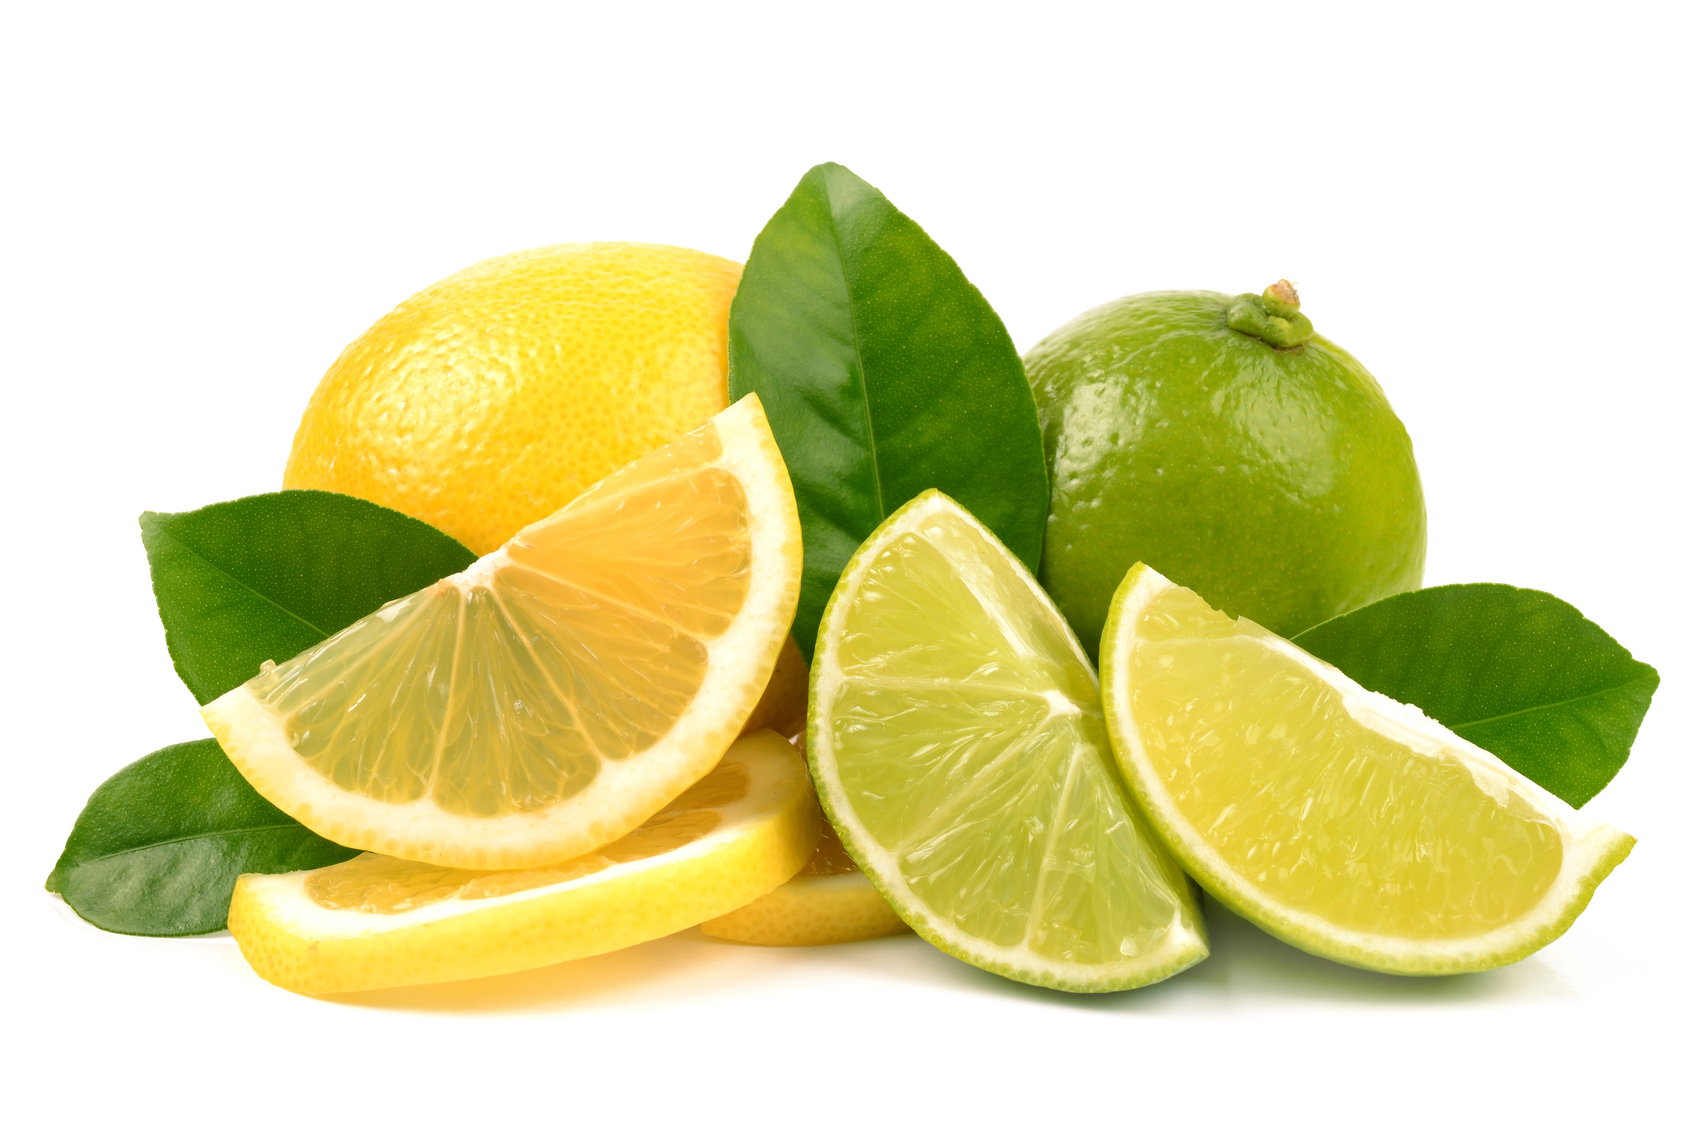 Facts about lemon revealed by several studies